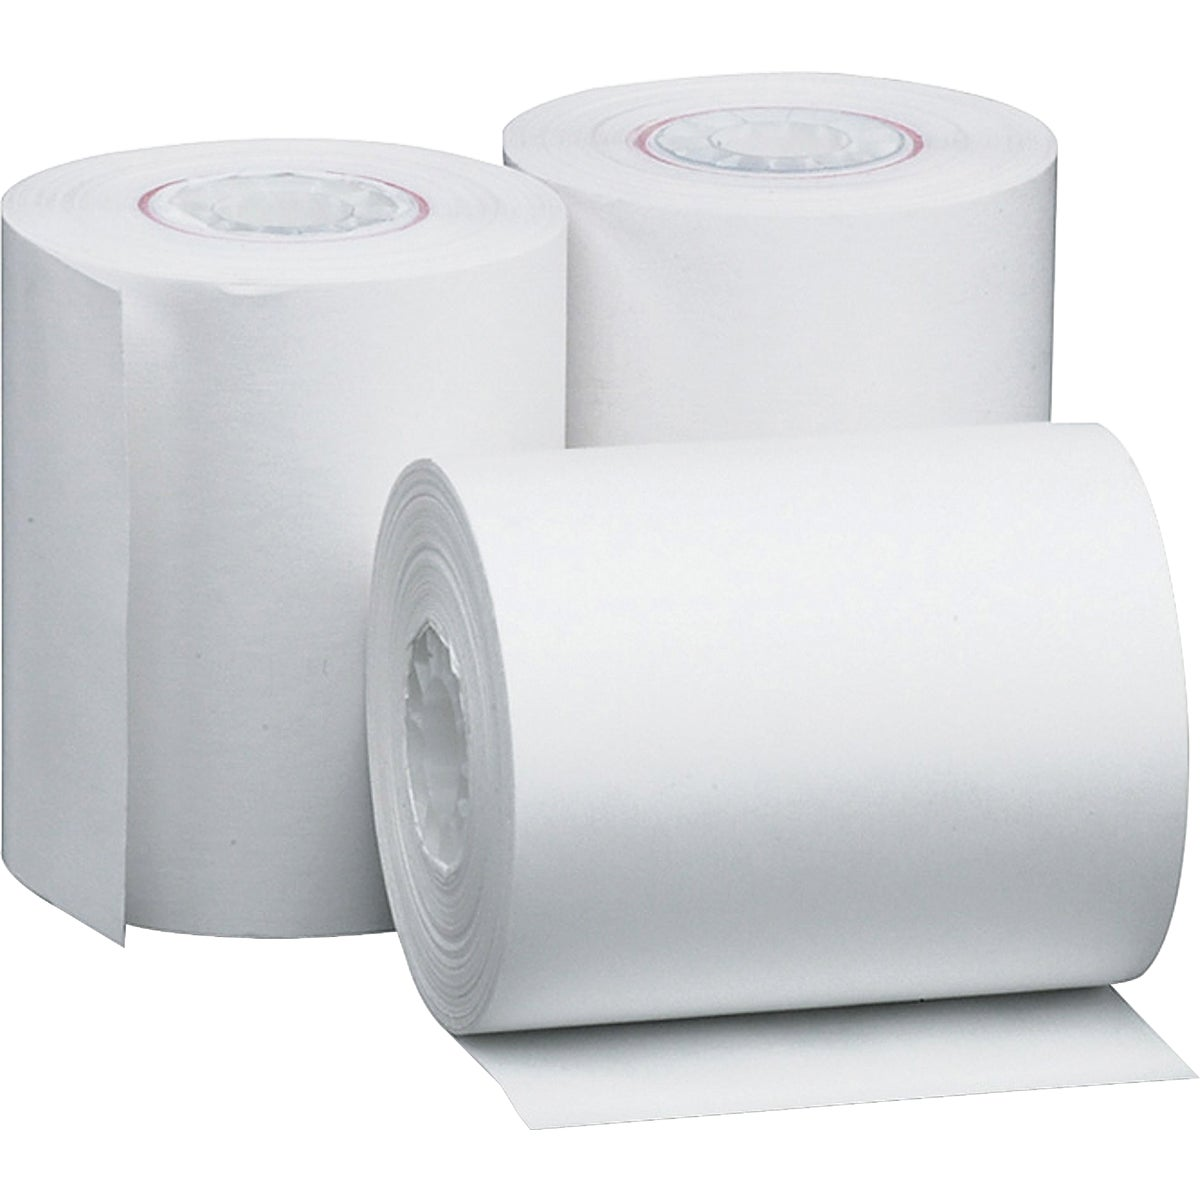 3Pk Calculatr Roll Paper